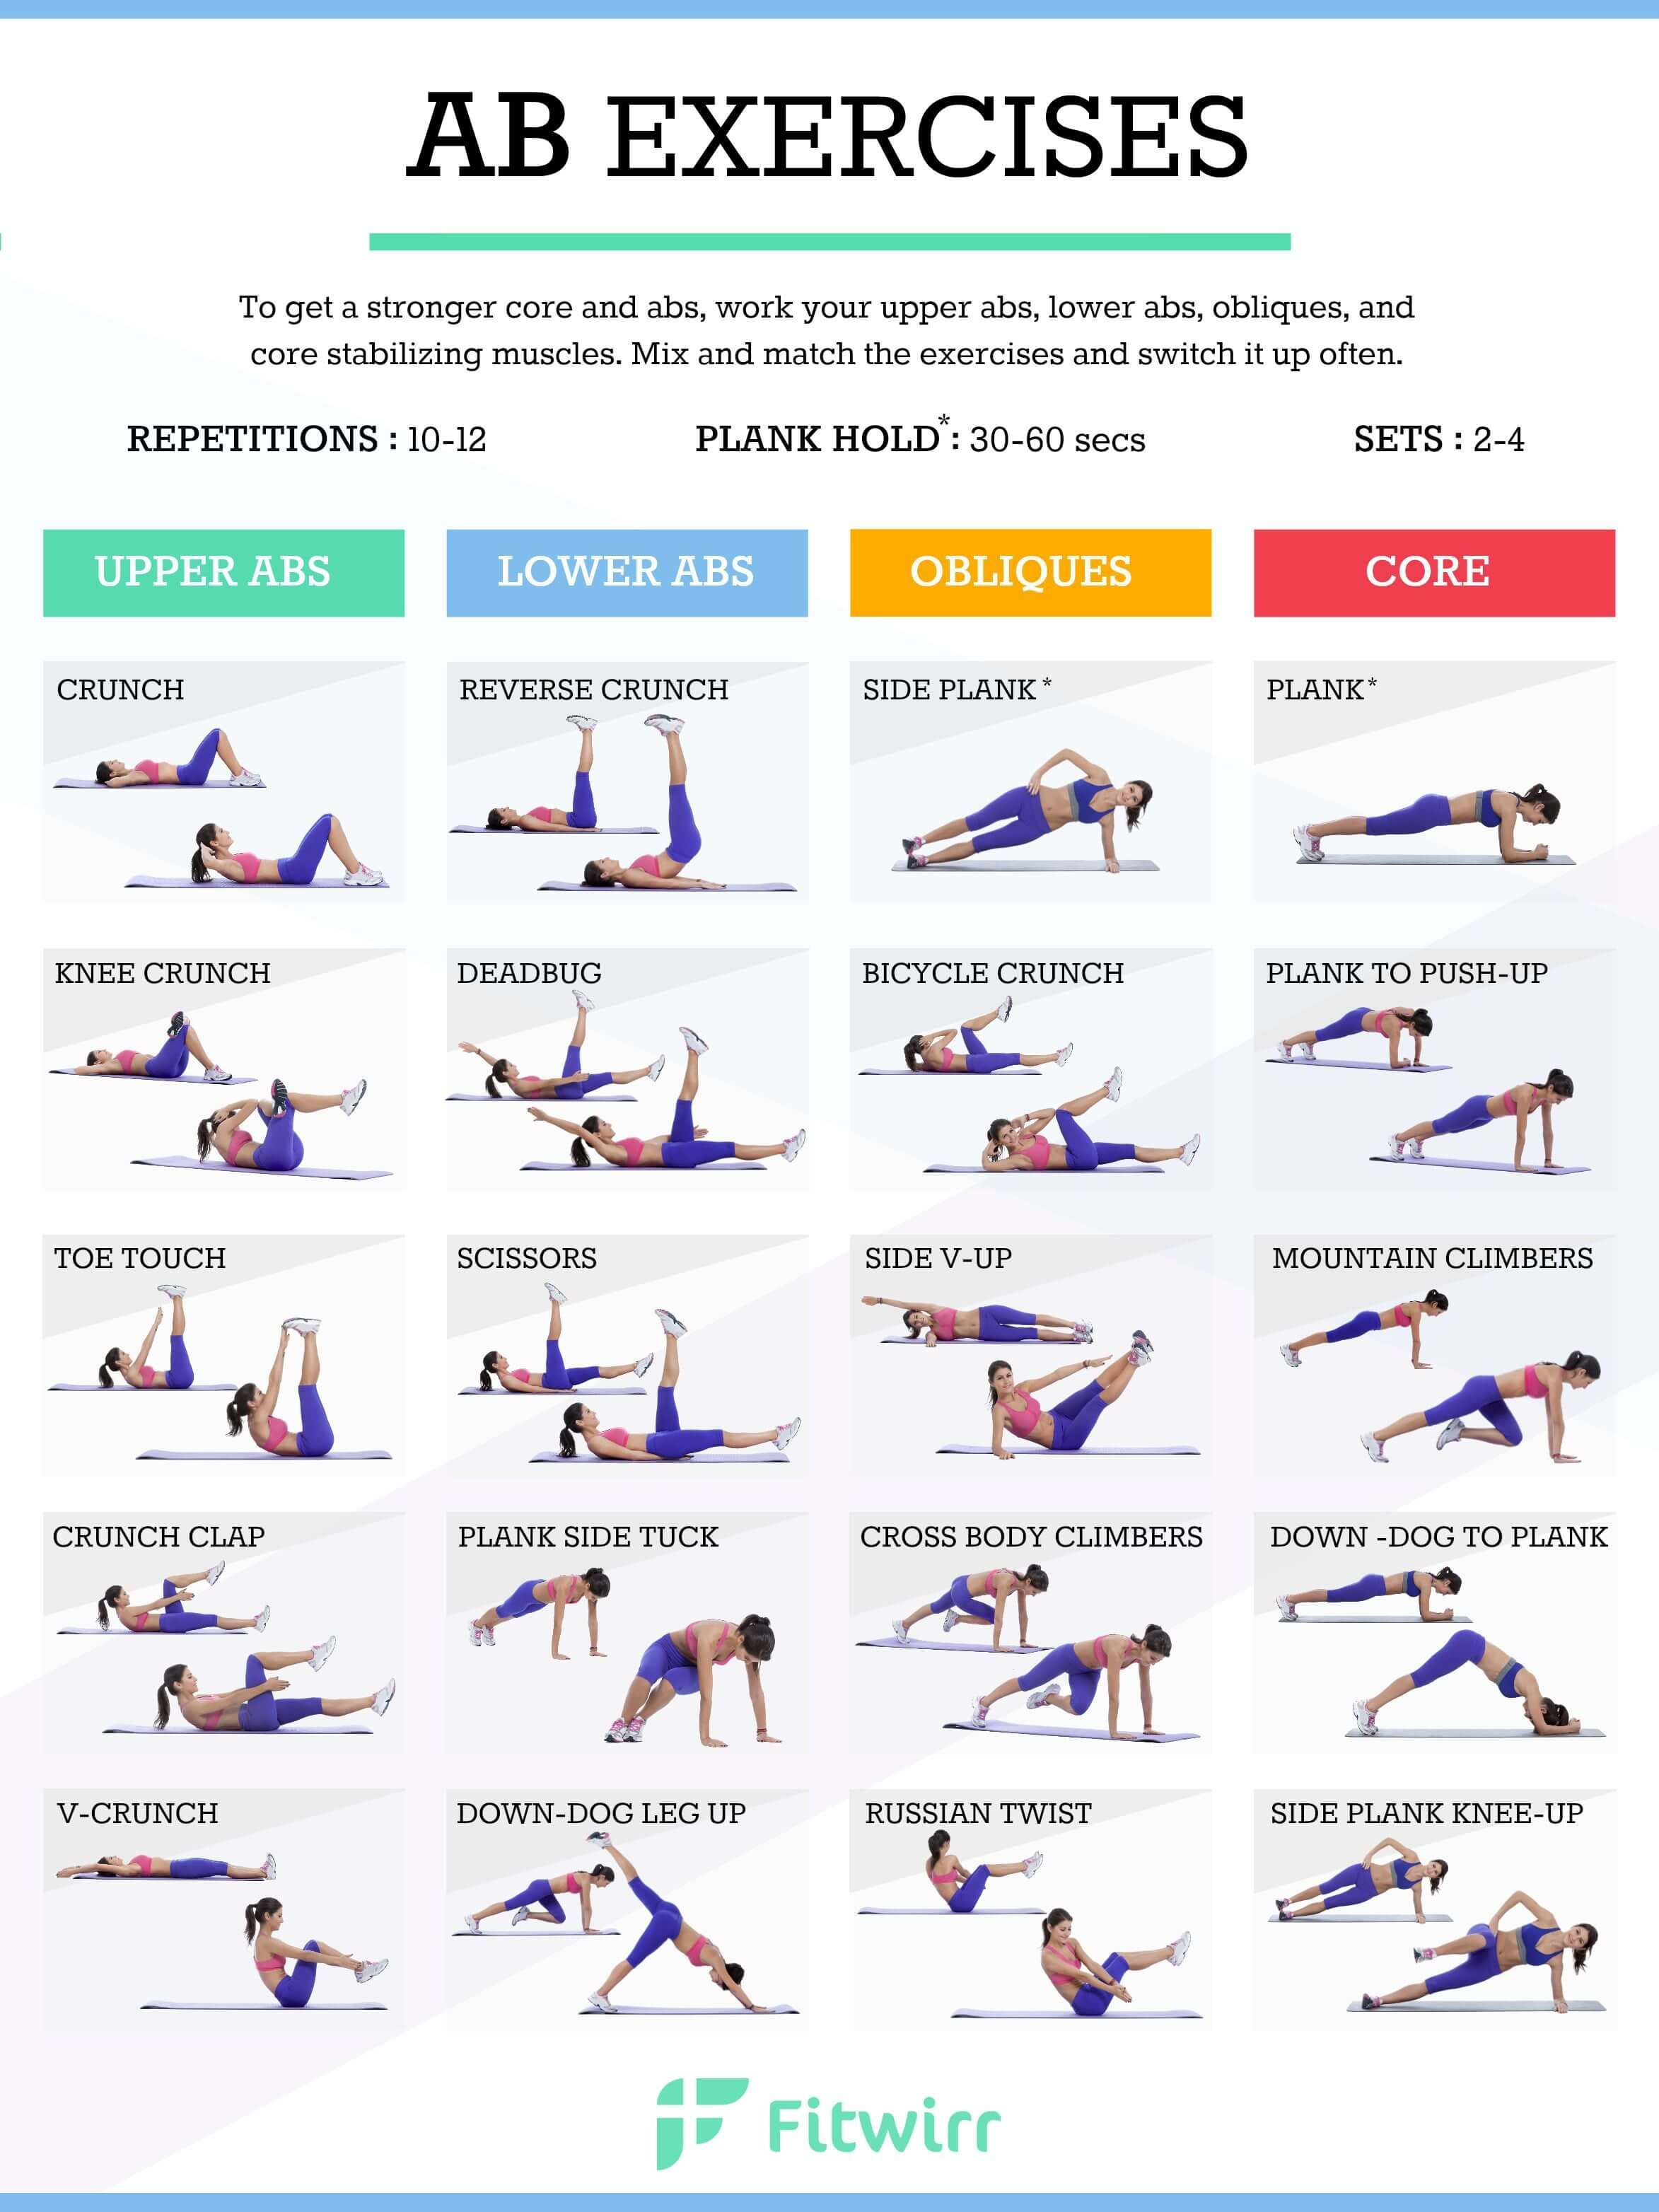 Abs exercise chart for women absexercises absworkouts posted by newhowtolosebellyfat also the absolute best exercises ab workouts rh pinterest